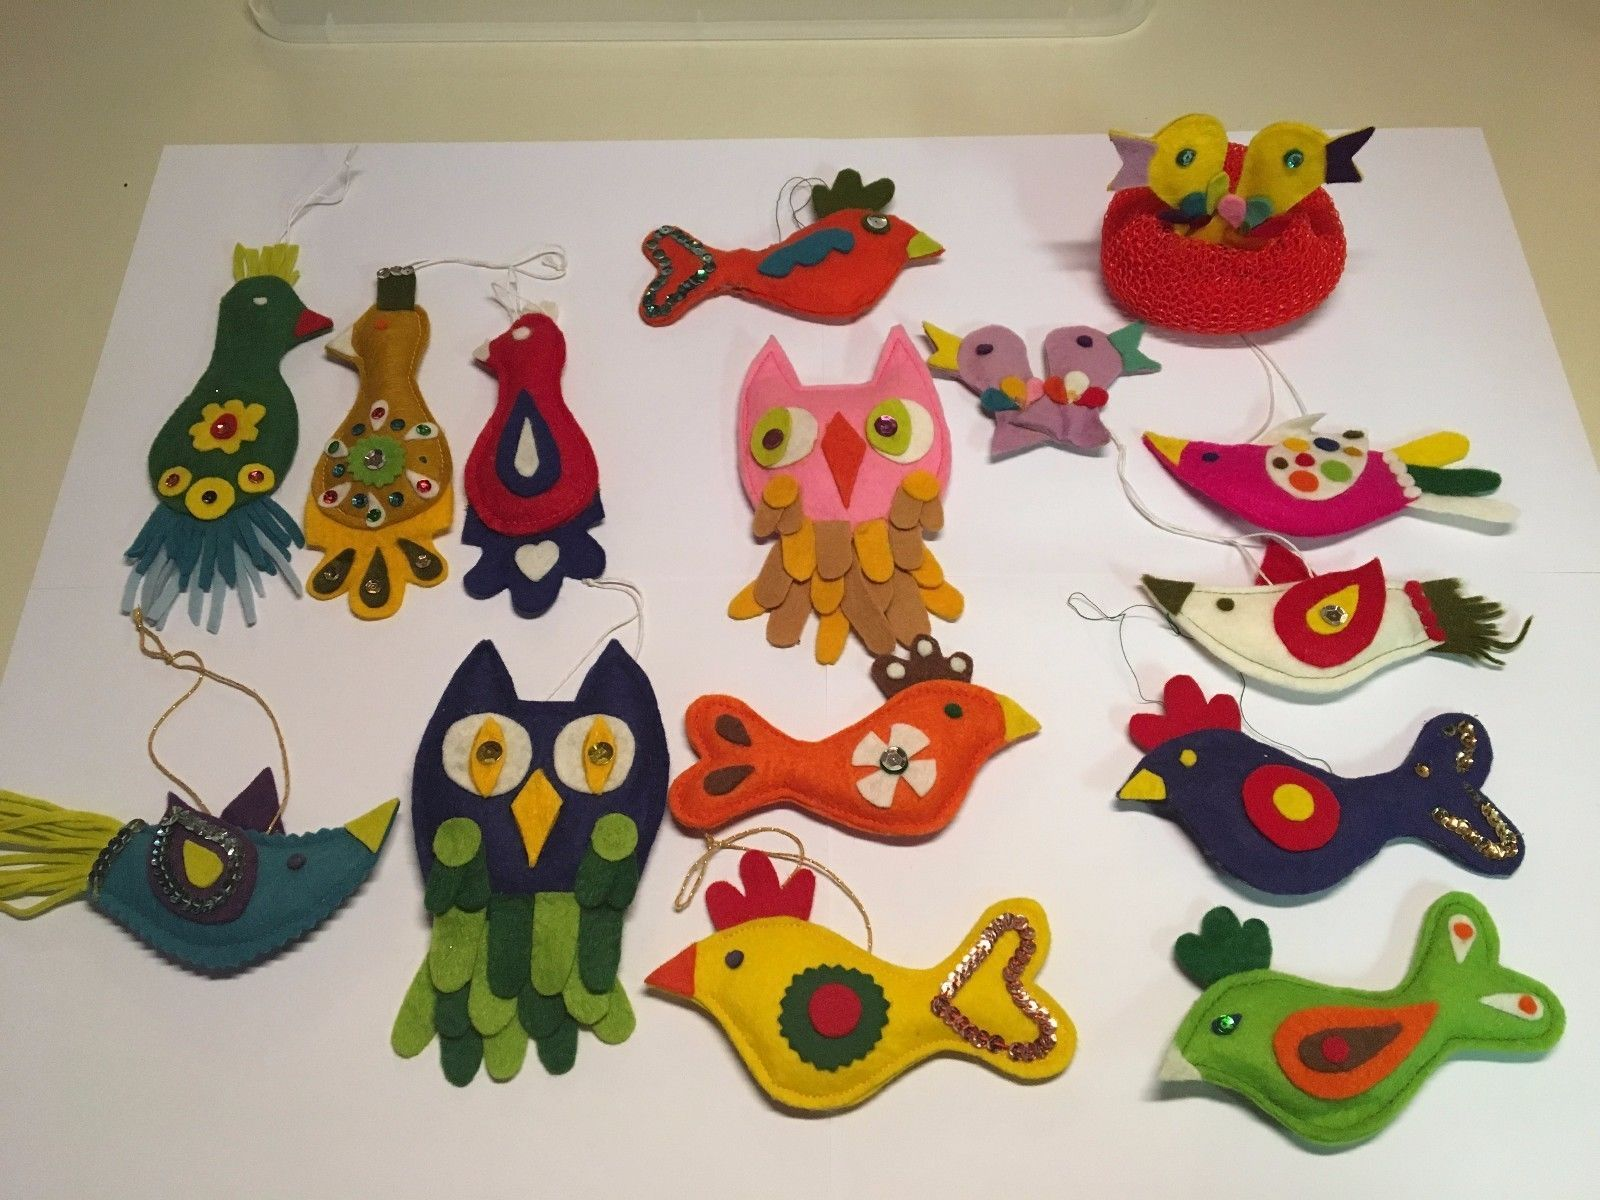 Vintage Handmade Felt & Sequin Bird Christmas Ornaments from patterns featured in the December 1964 issue of Family Circle magazine.